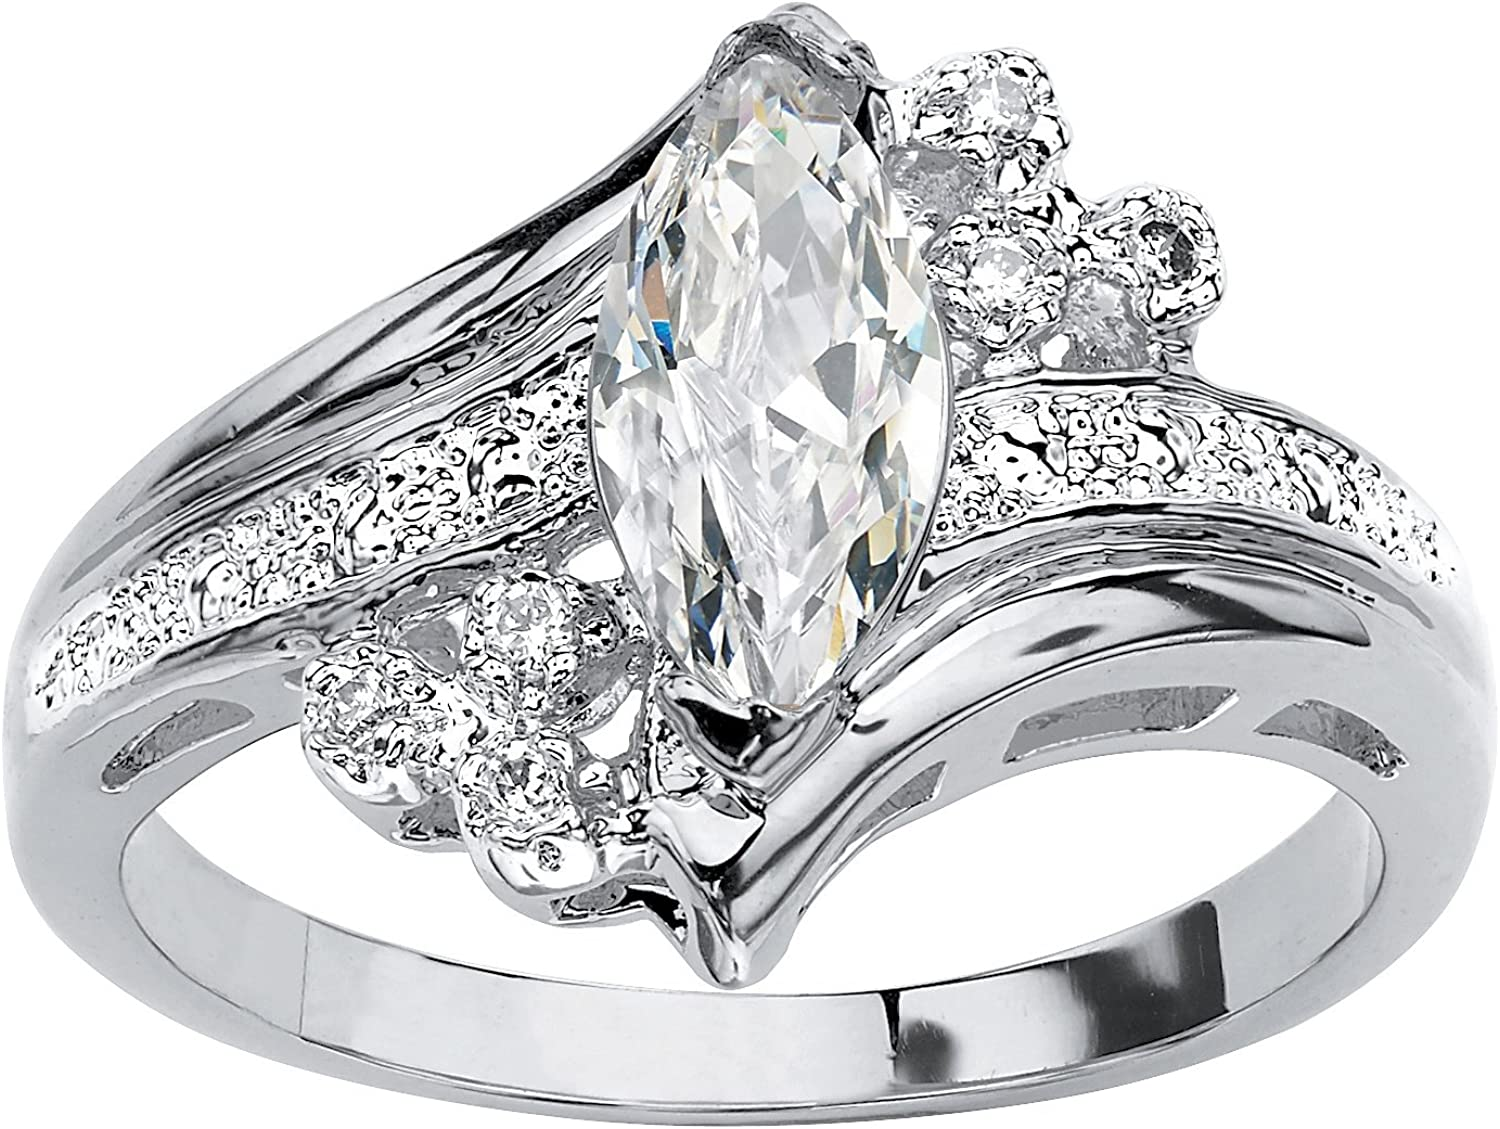 Palm Beach Jewelry Silvertone Marquise Cut Cubic Zirconia Engagement Ring